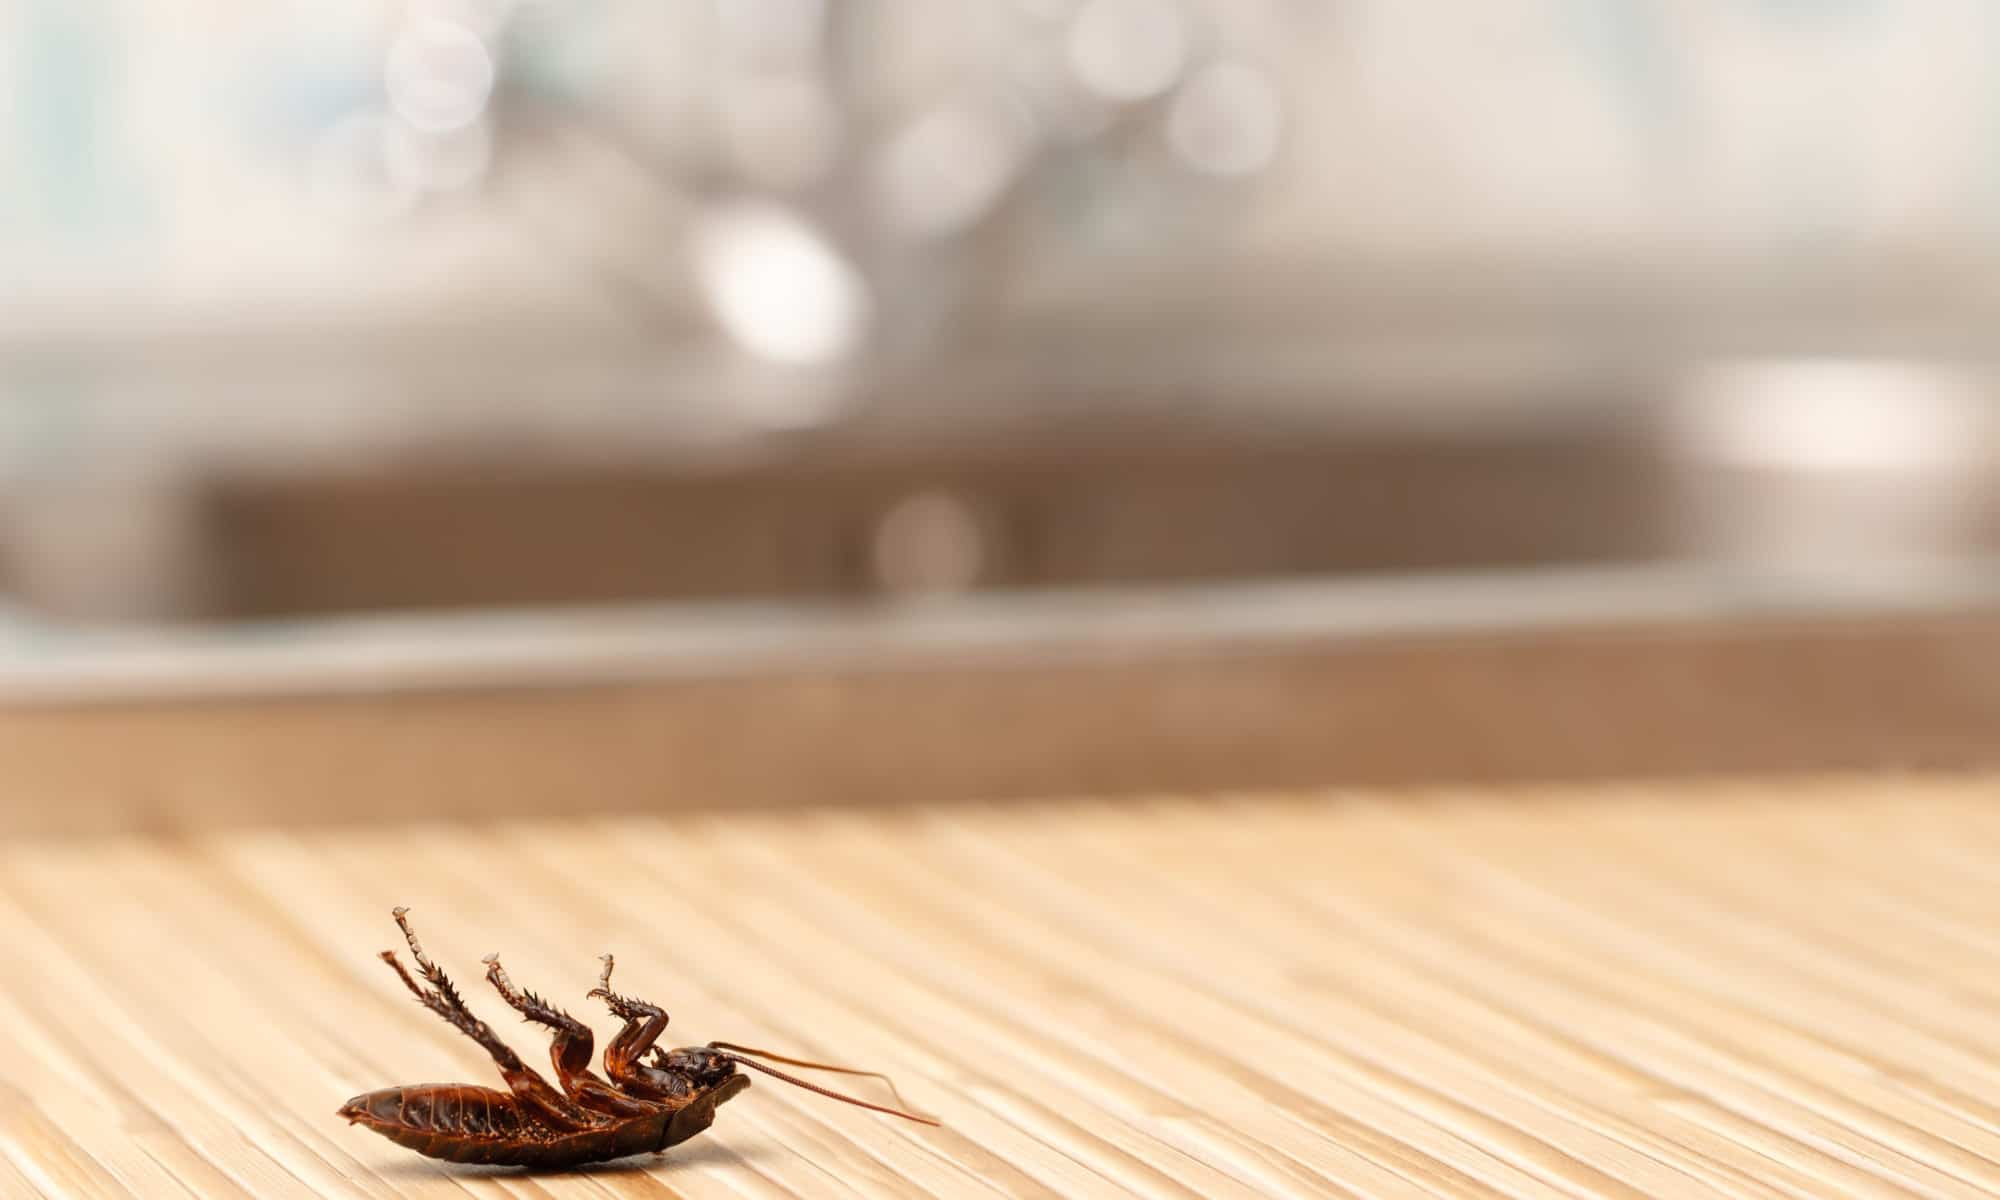 A dead cockroach in someones home after using the integrated pest management approach